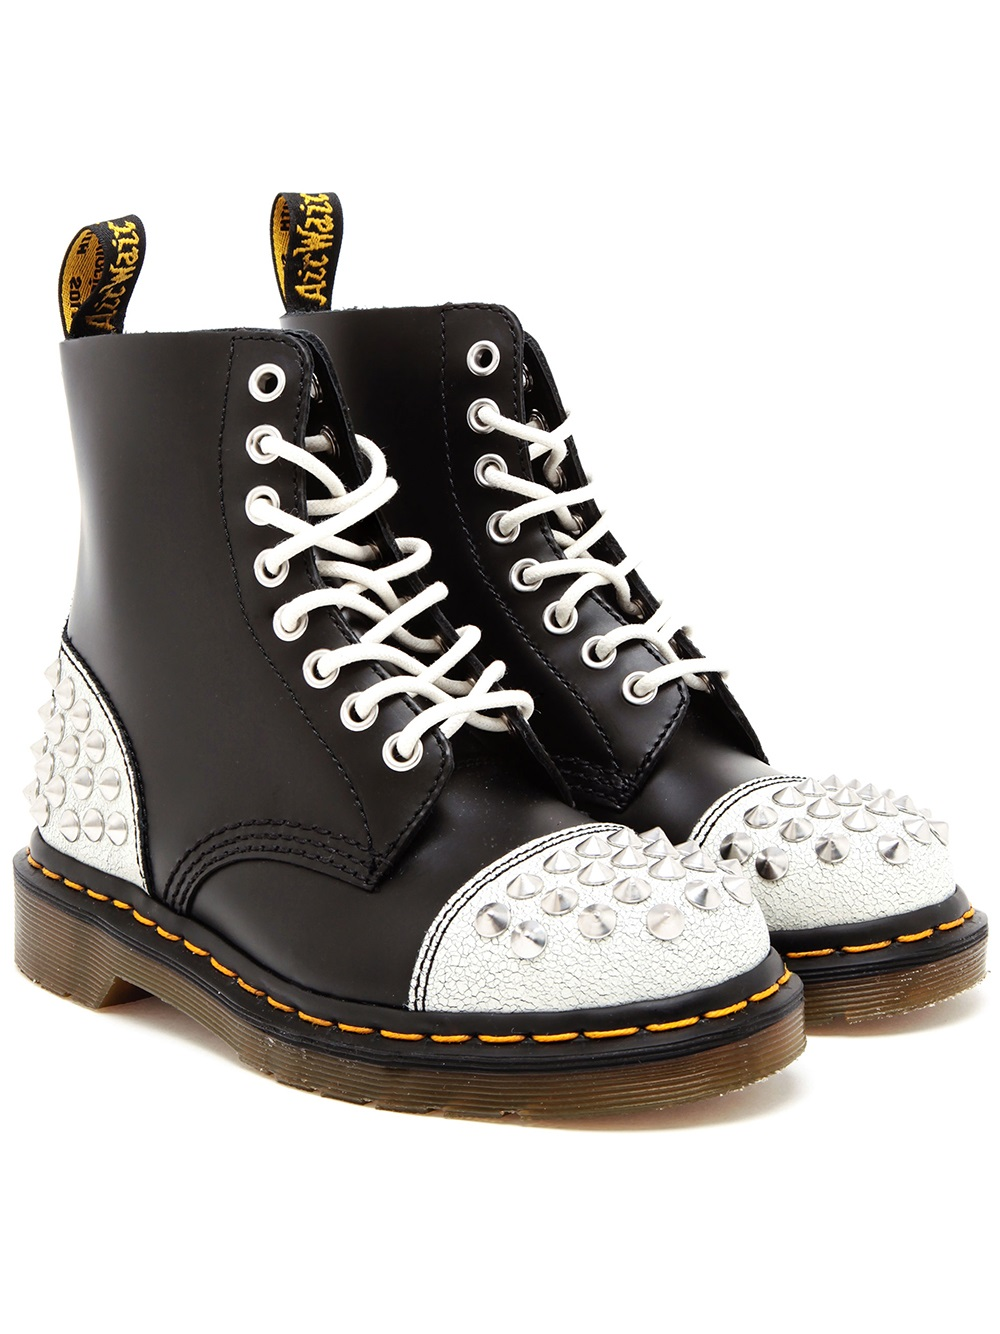 lyst dr martens studded leather air wair boots in white. Black Bedroom Furniture Sets. Home Design Ideas